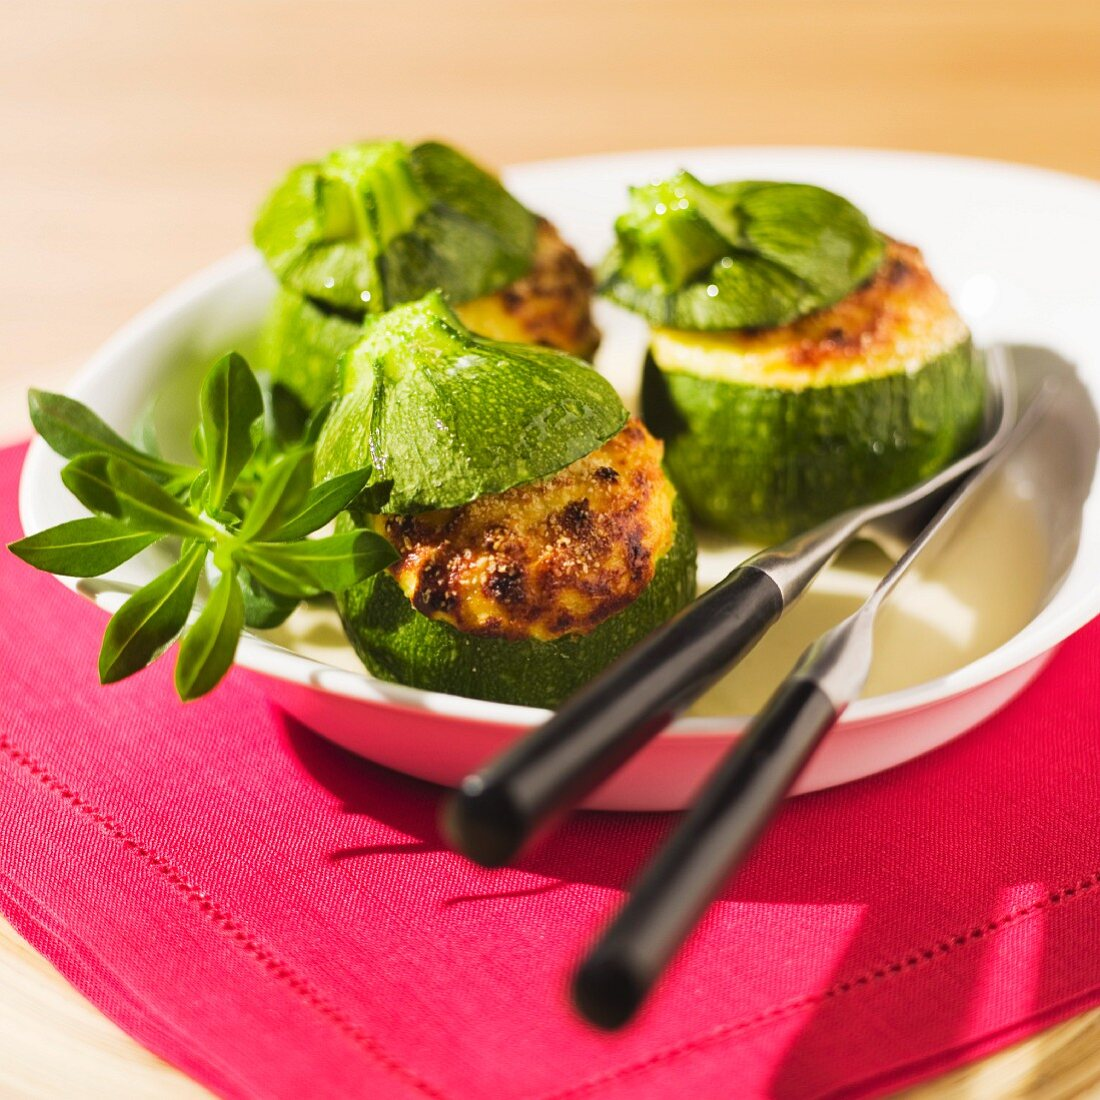 Courgettes stuffed with brocciu